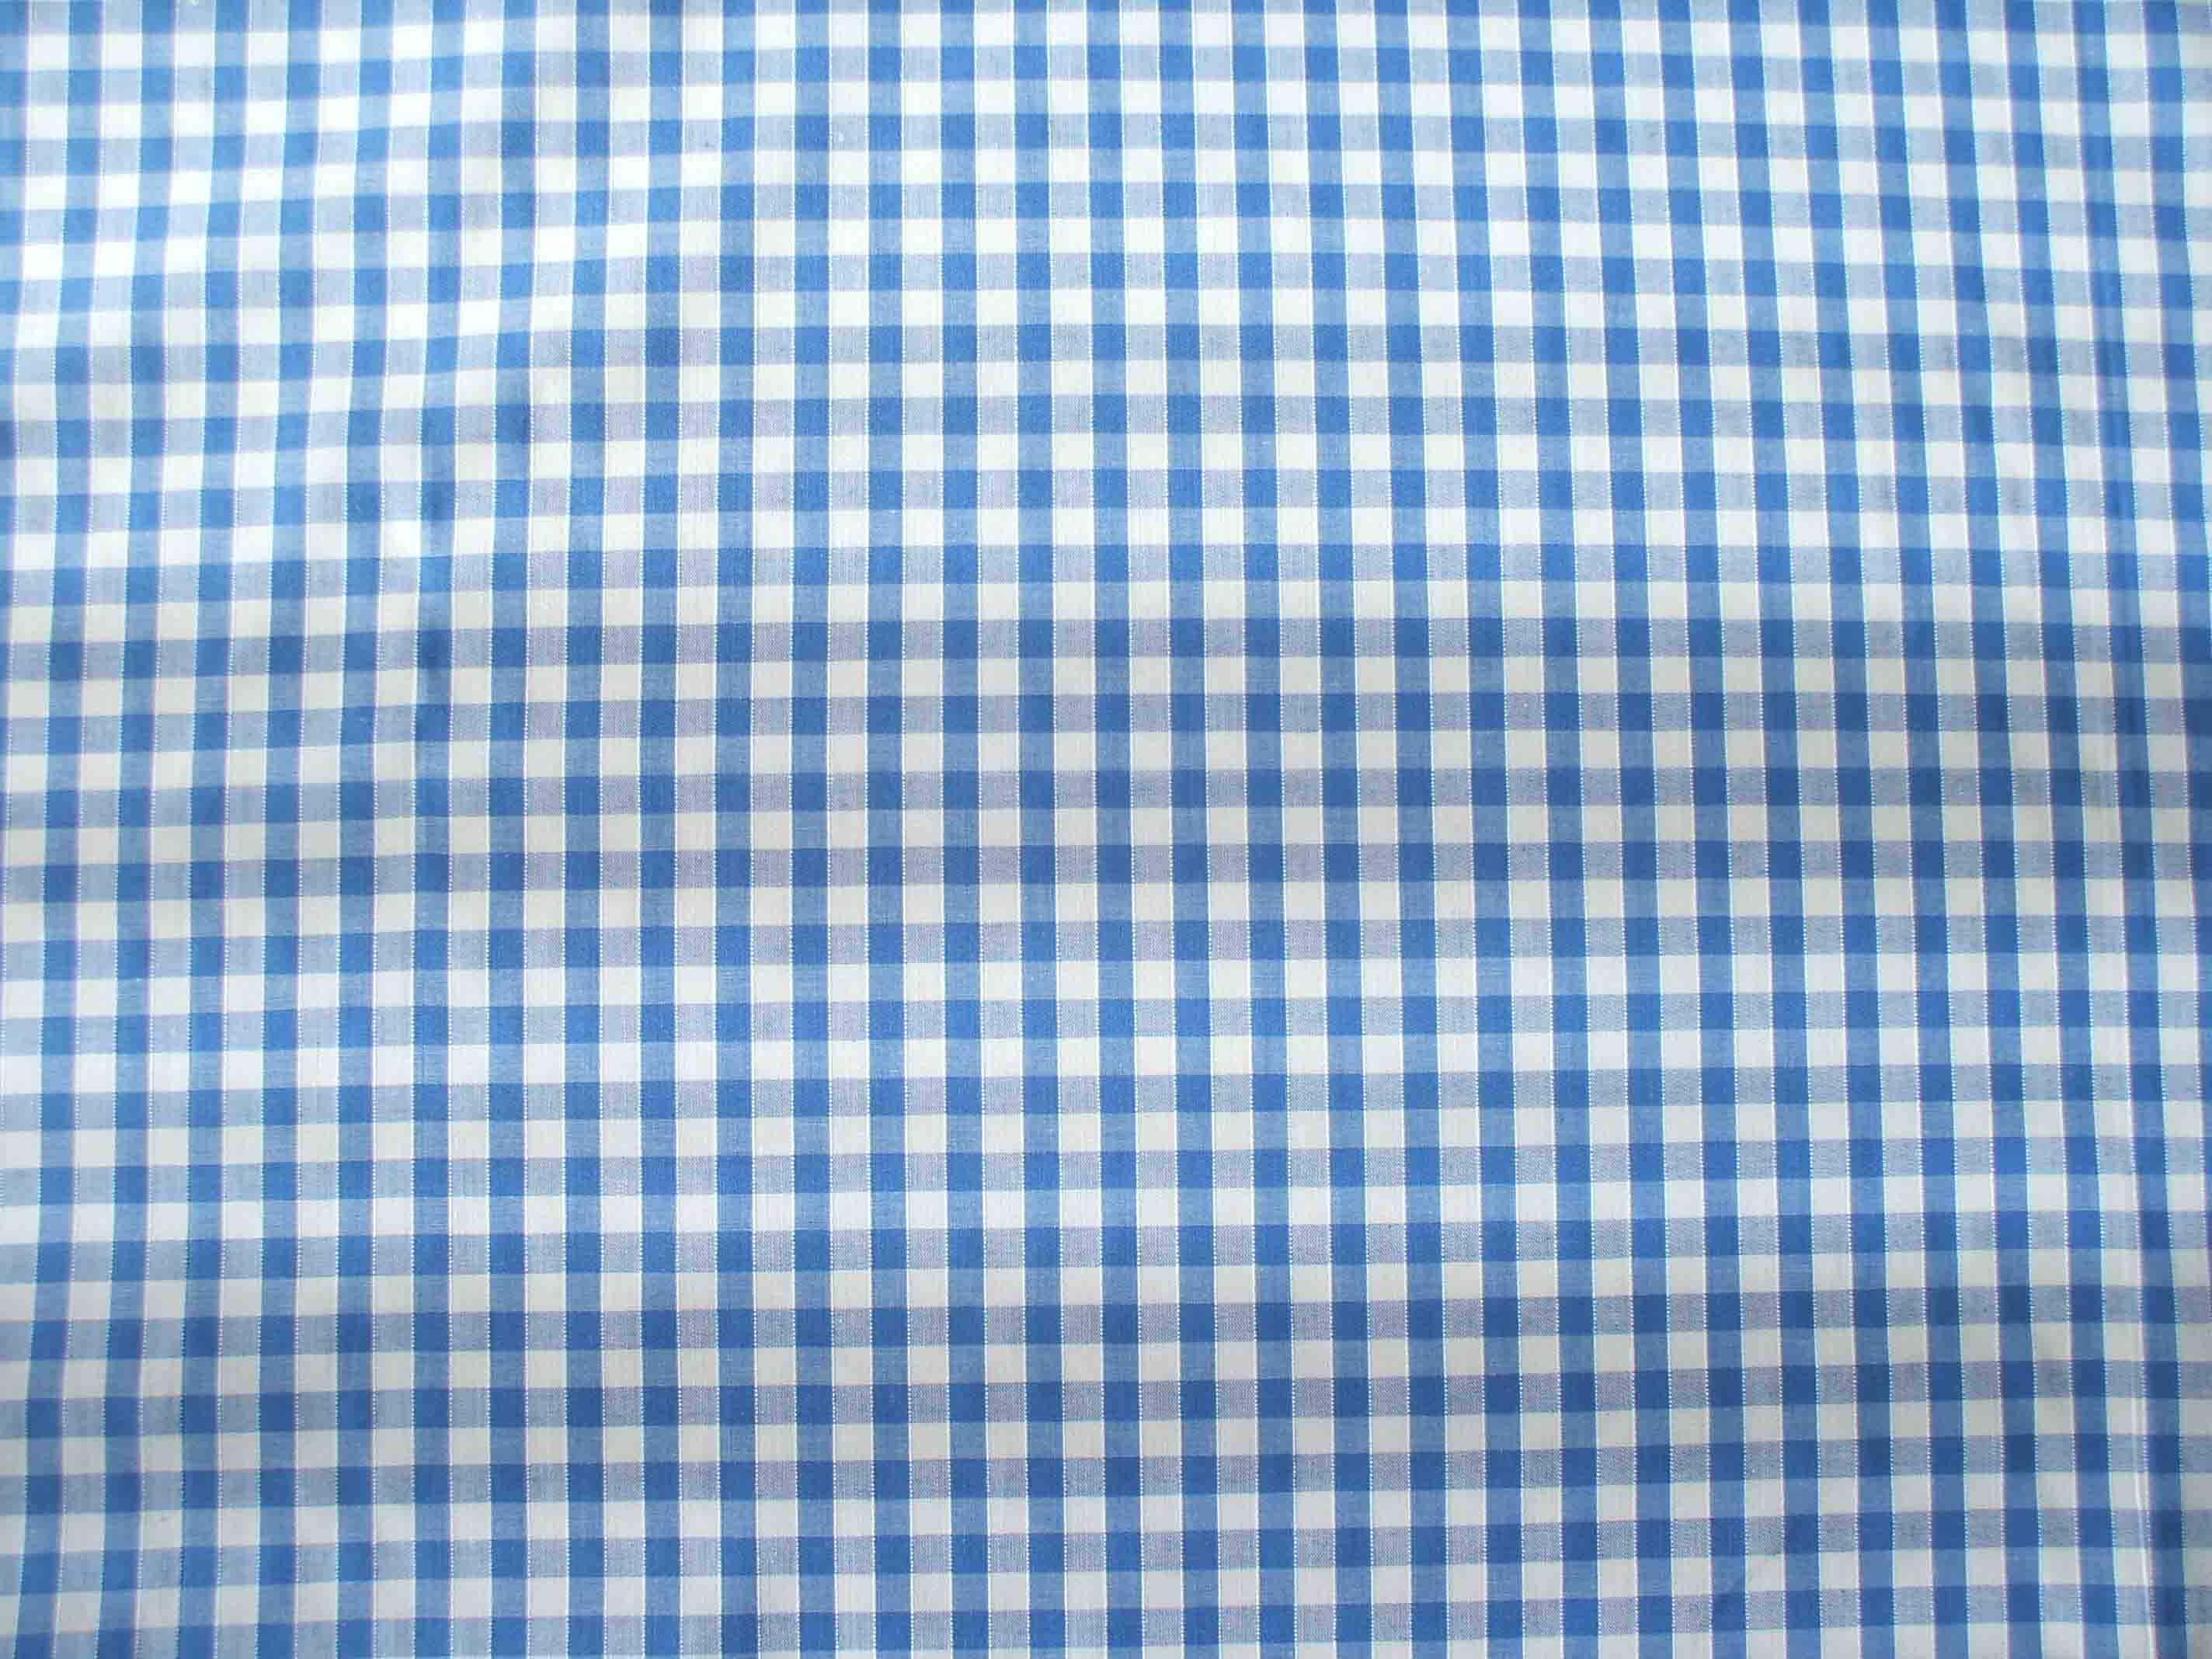 1 8 Gingham Quality Polycotton Fabric In Light Blue